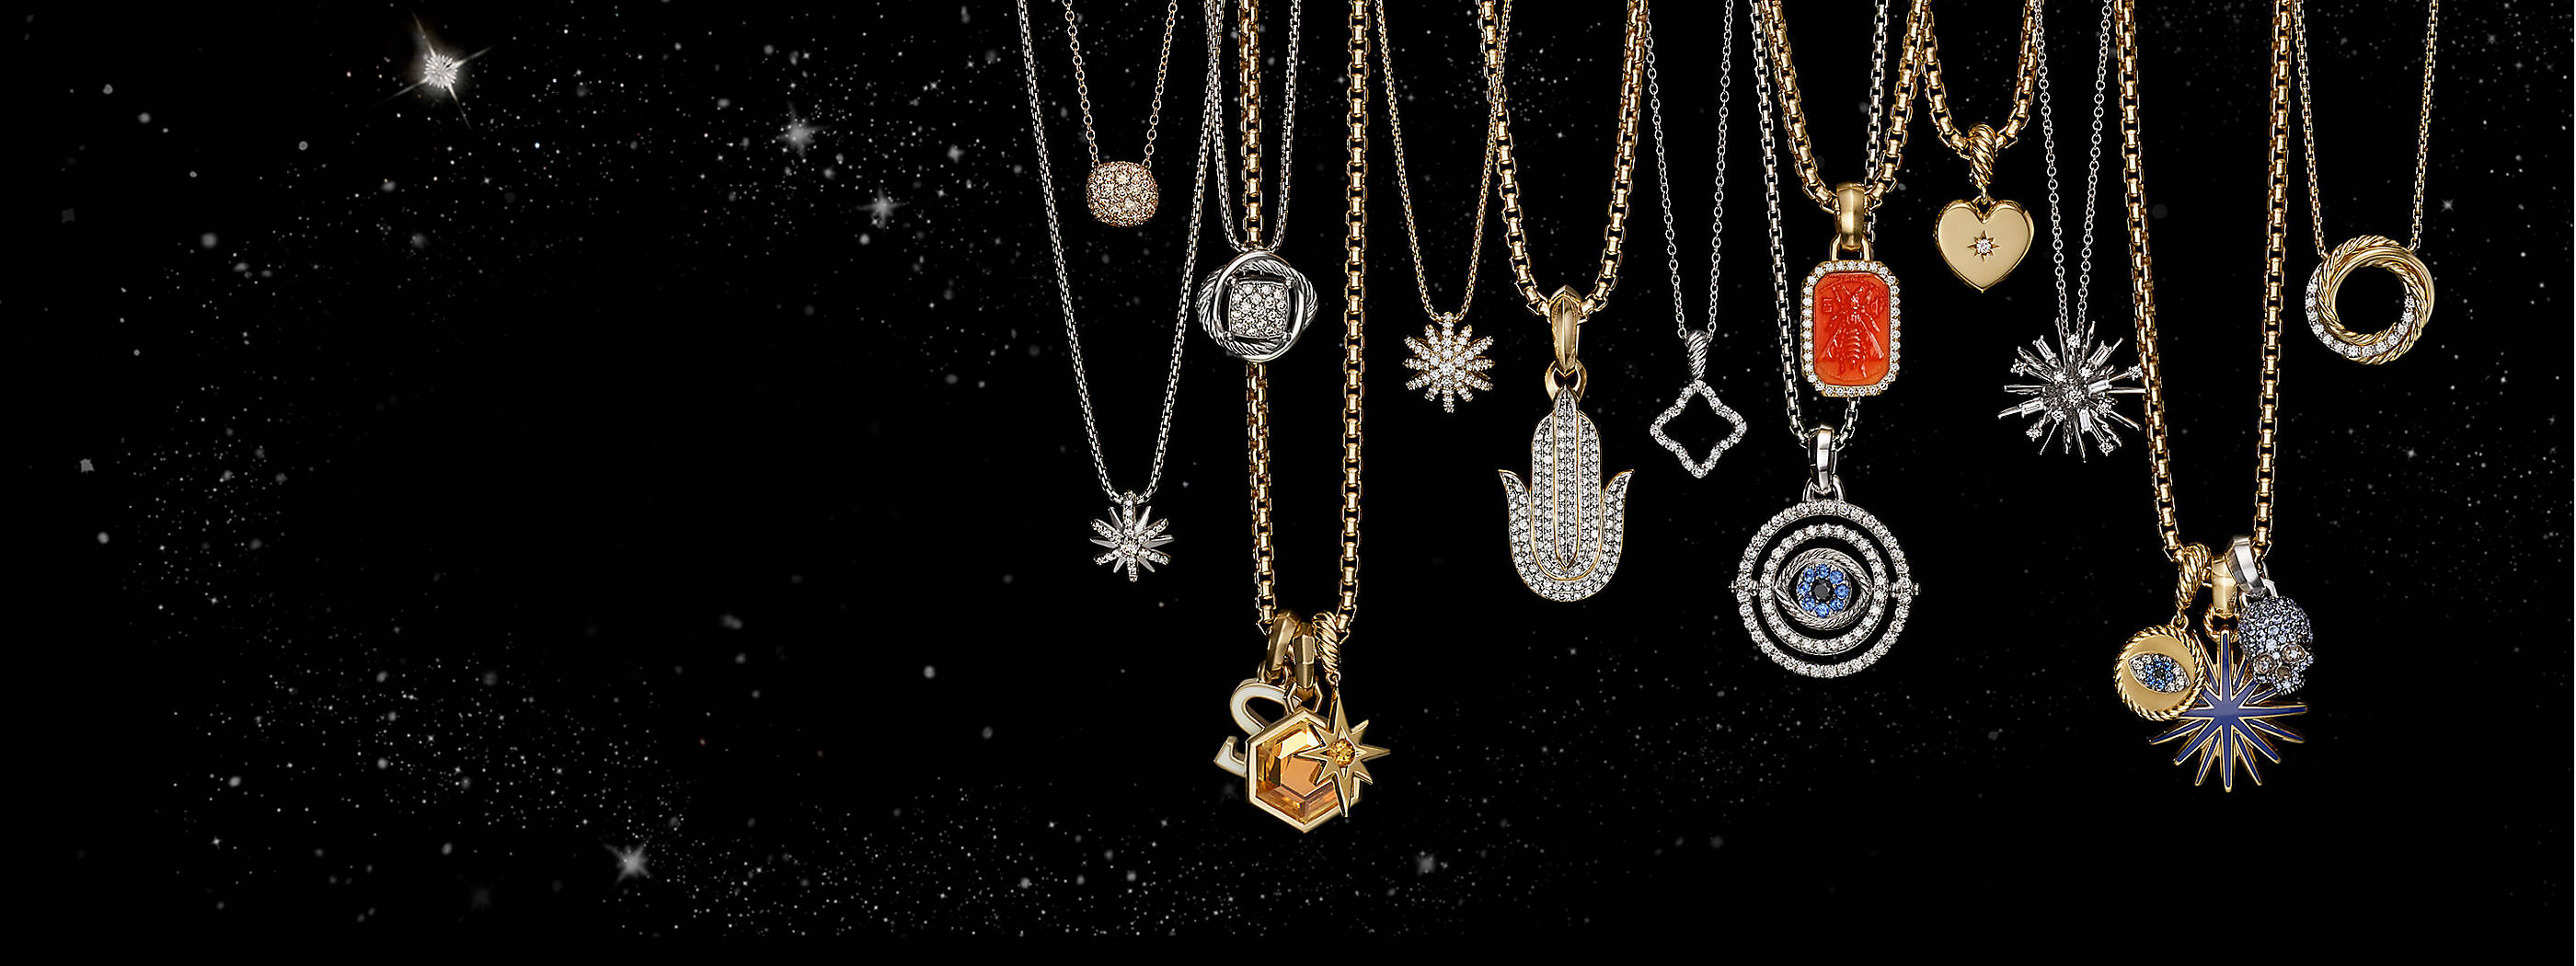 A color photo shows a horizontal row of 17 David Yurman women's amulets and pendants strung on 13 box chain necklaces hanging in front of a starry night sky. The women's jewelry is crafted from 18K yellow or white gold or sterling silver with or without diamonds or colored gemstones like citrine, sapphires or rubellite. The charms are shaped like stars, a skull, a hand, an octagon, the letter S or a heart, or depict an evil eye or bee